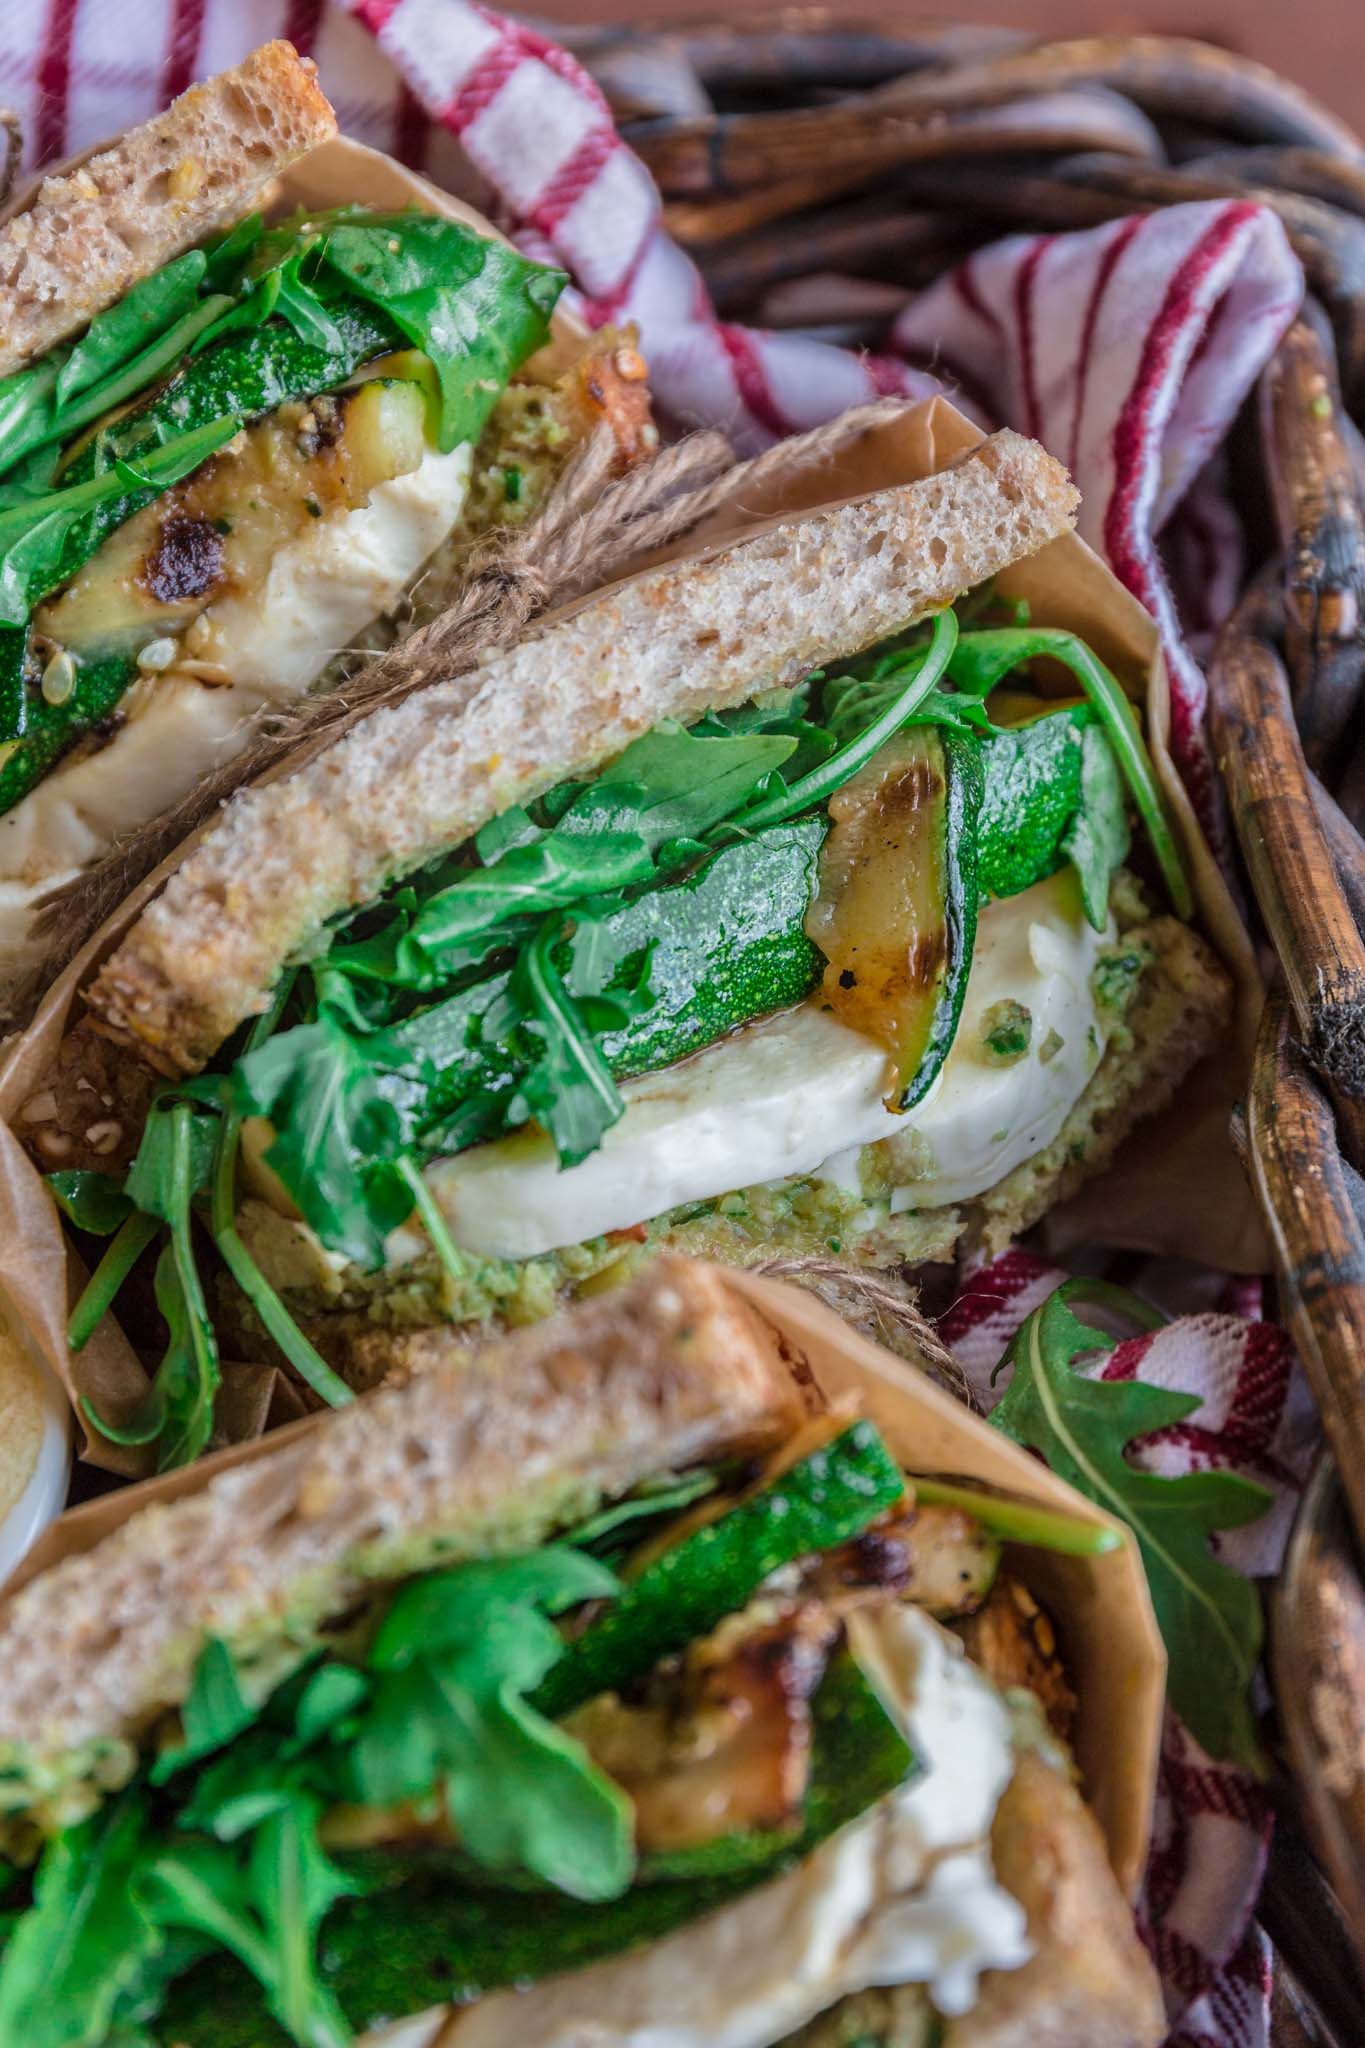 Grilled Zucchini Sandwich with Green Olive Pesto   www.oliviascuisine.com   This delicious Grilled Zucchini Sandwich will get you excited about picnic weather. Packed with a lot of flavor, thanks to a homemade green olive pesto, fresh mozzarella, arugula and, the star of the show, grilled zucchini. Lip smacking good and guilt-free? What more could you possibly ask for? (Recipe and food photography by @oliviascuisine)